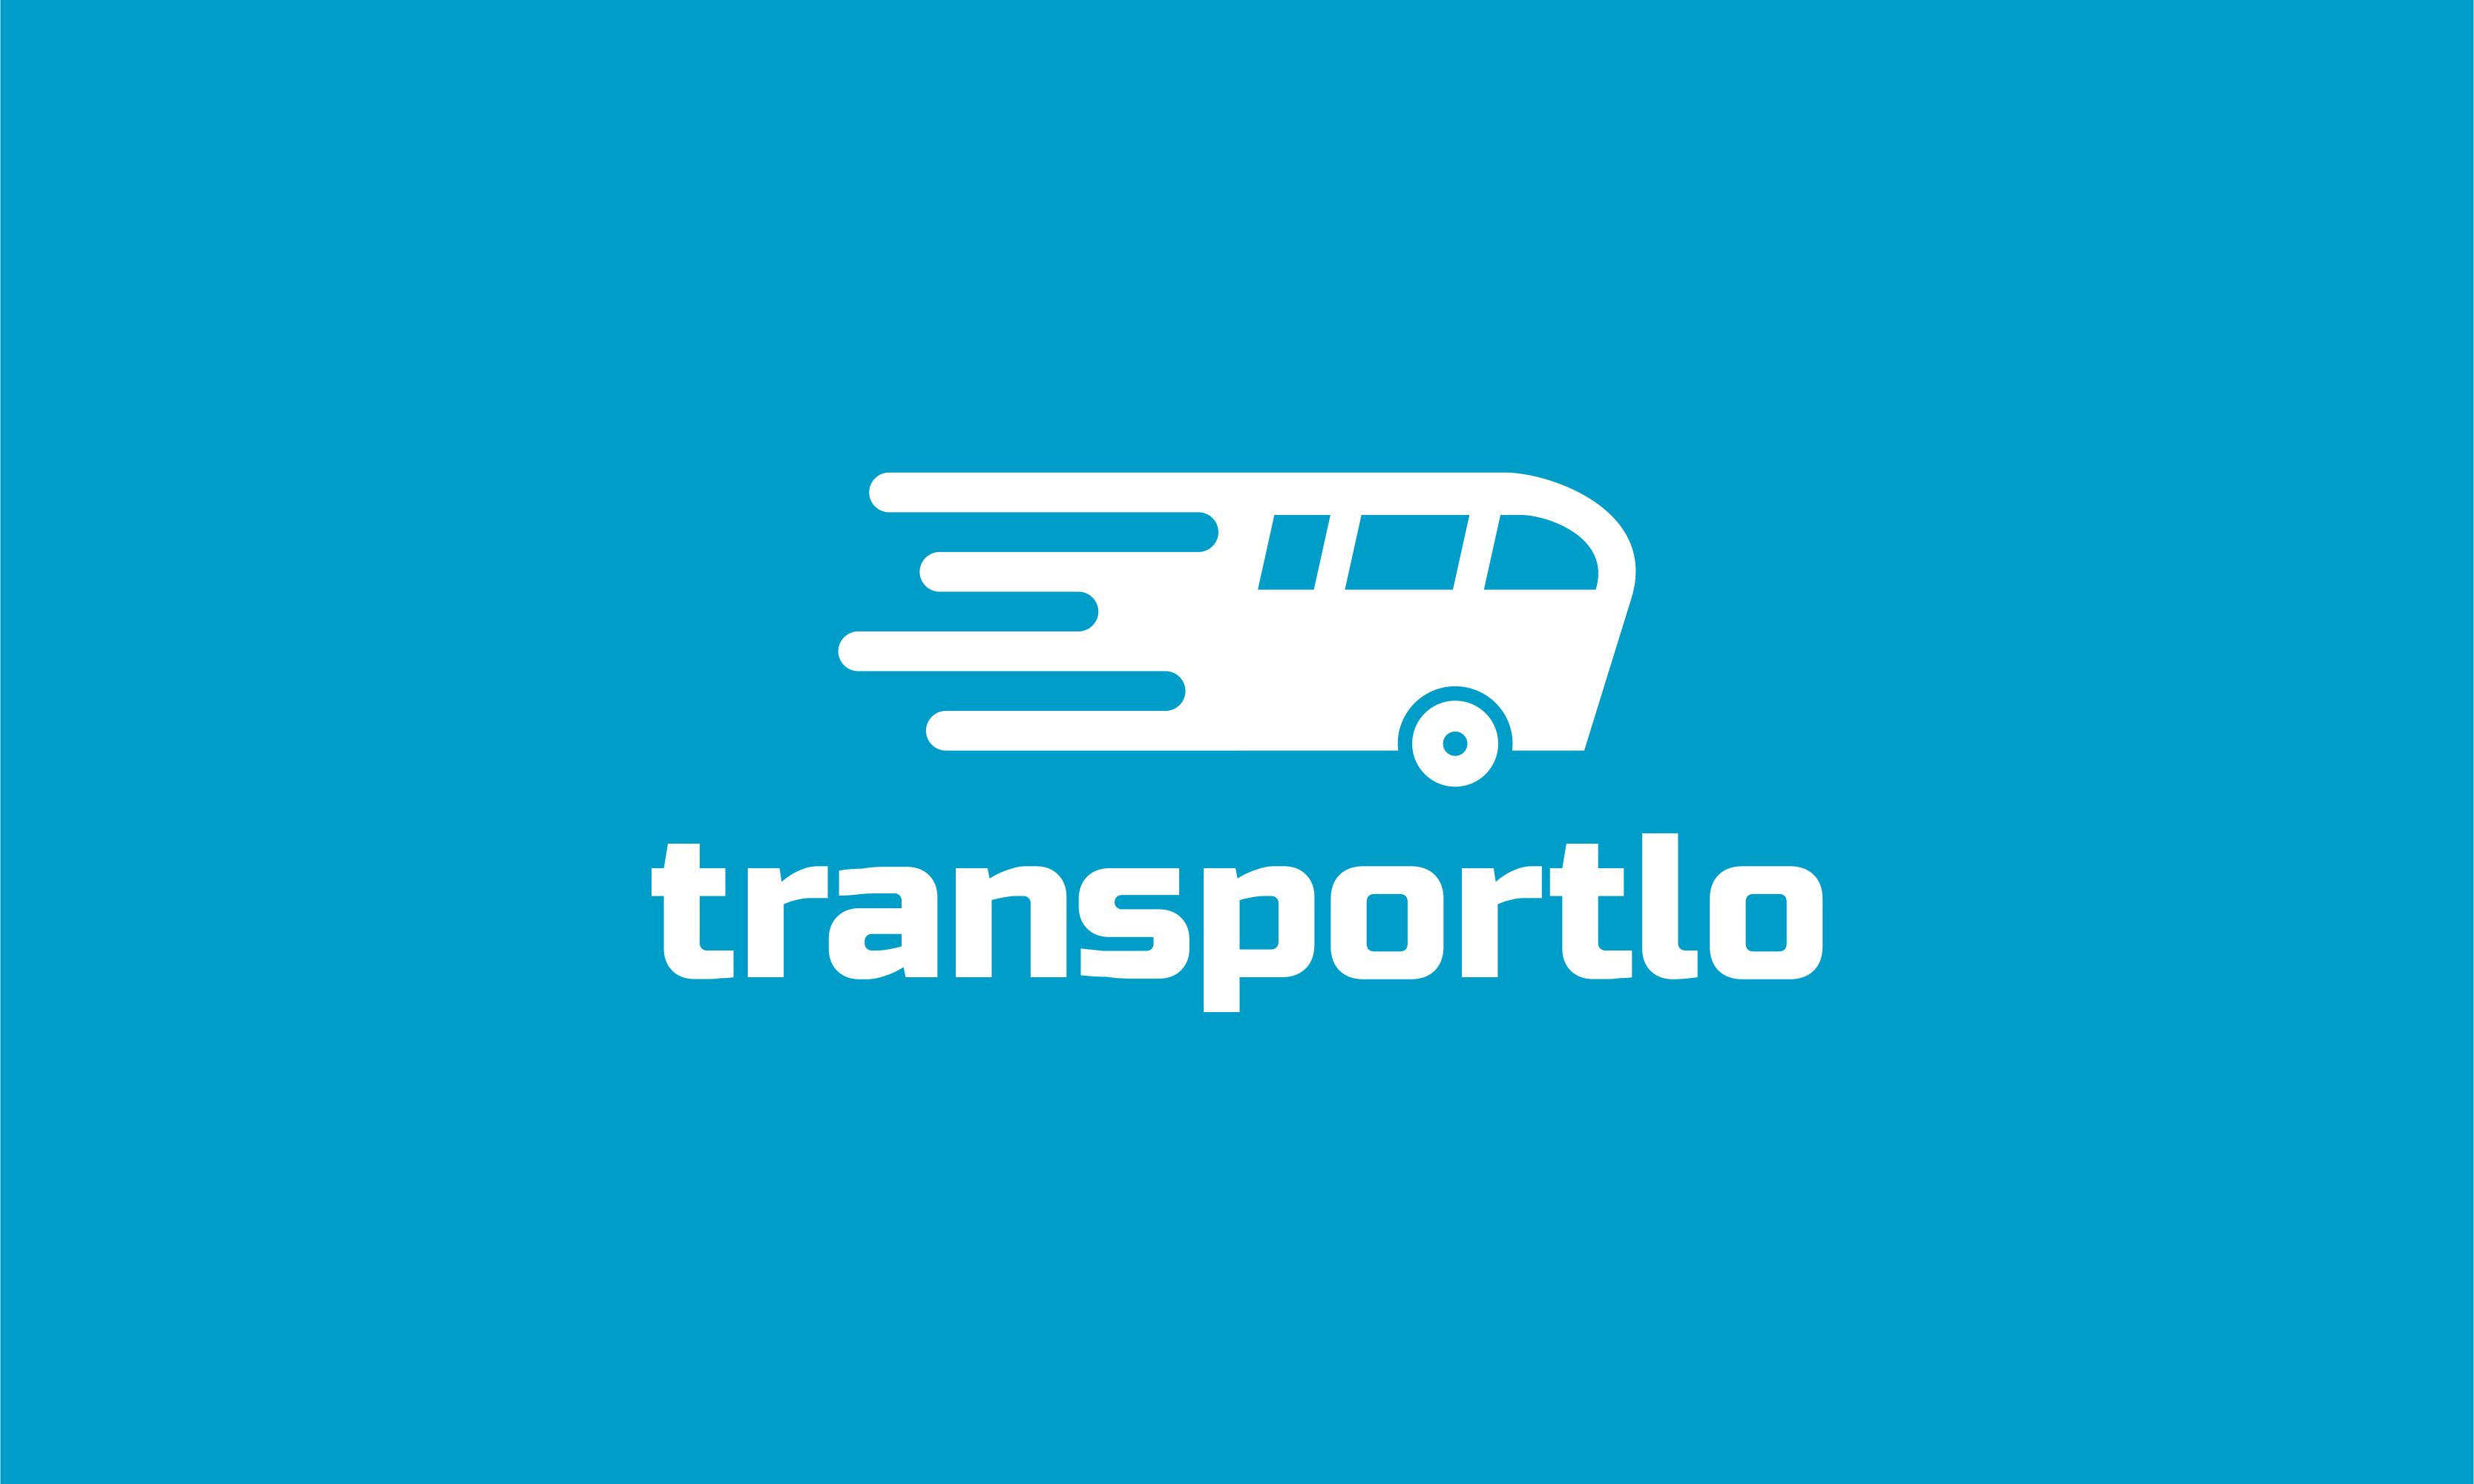 Transportlo - Transport domain name for sale